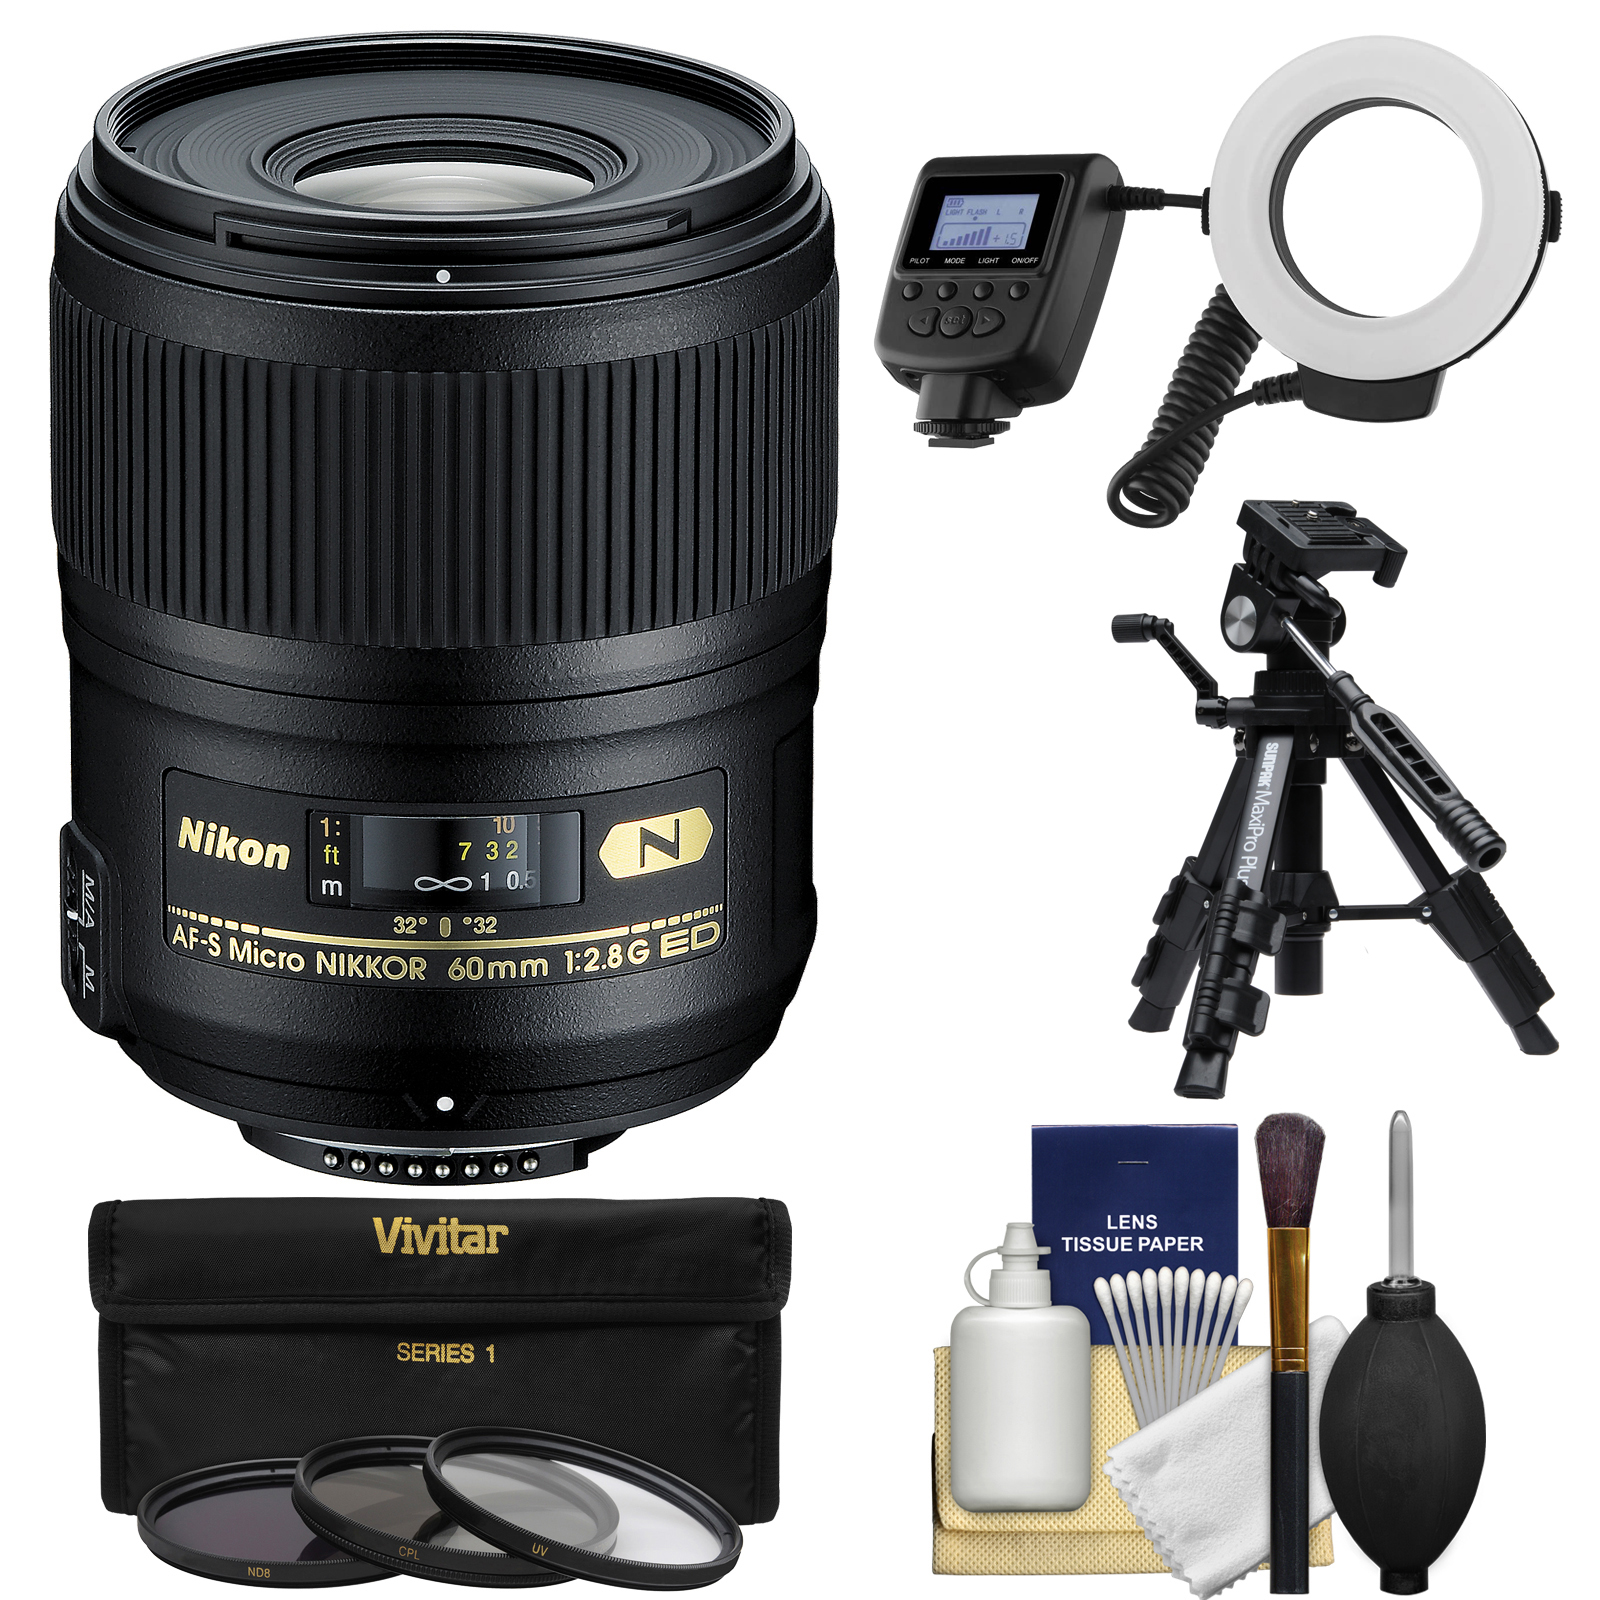 Nikon 60mm f/2.8G AF-S ED Micro-Nikkor Lens with Ringlight + Tripod + 3 Filters + Kit for D3200, D3300, D5200, D5300, D7000, D7100, D610, D800, D810, D4s DSLR Cameras